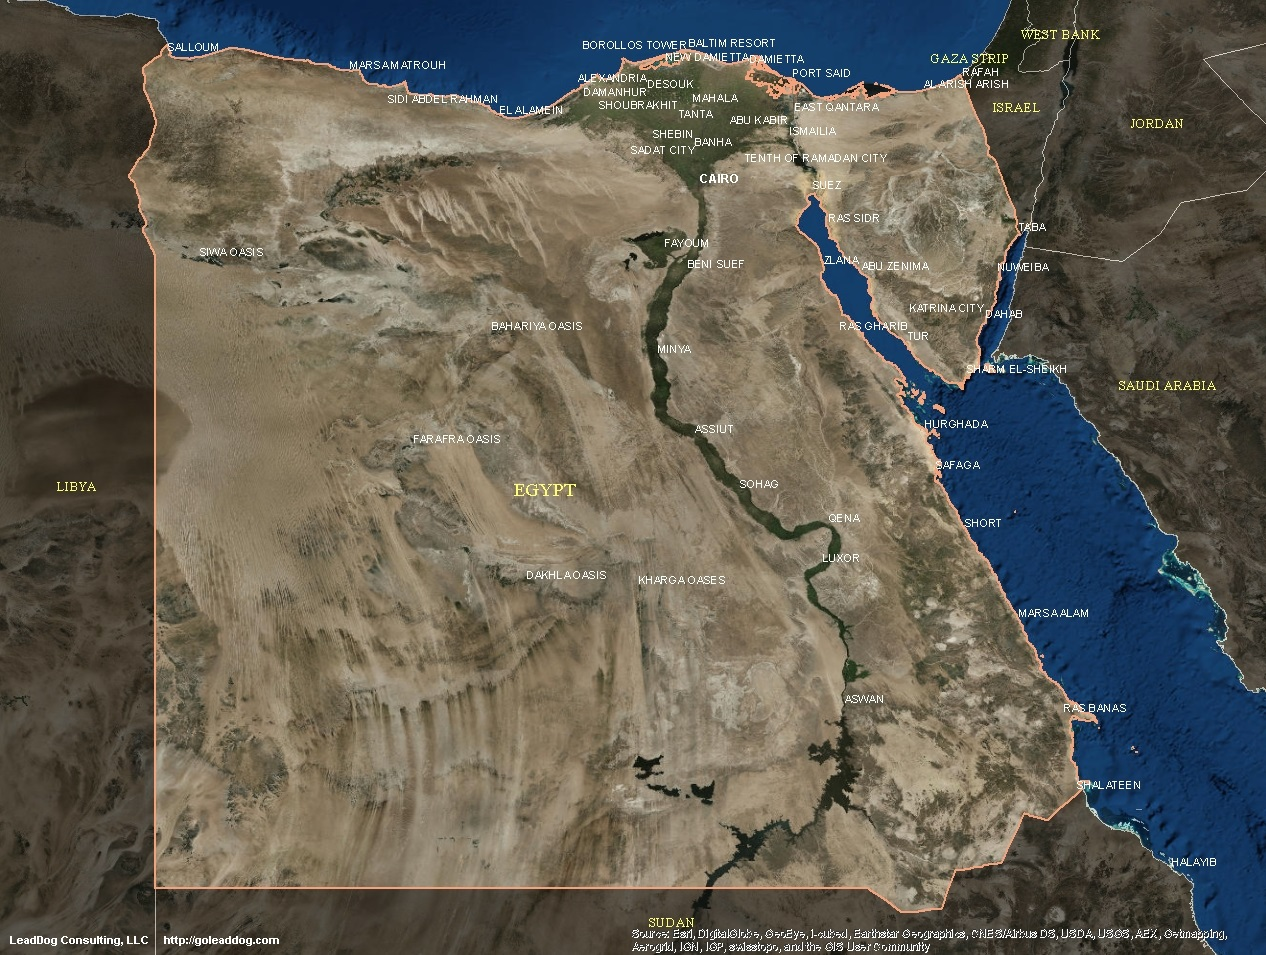 Egypt Satellite Maps | LeadDog Consulting on traceable map of egypt, earth map of egypt, temperature of egypt, resource map of egypt, ancient egypt, agricultural map of egypt, old map of egypt, physical map of egypt, forecast map of egypt, google maps of egypt, precipitation of egypt, outline map of egypt, topographical map of egypt, statistics of egypt, hd map of egypt, satellite view of egypt, world map of egypt, square miles of egypt, aerial view of egypt, full map of egypt,